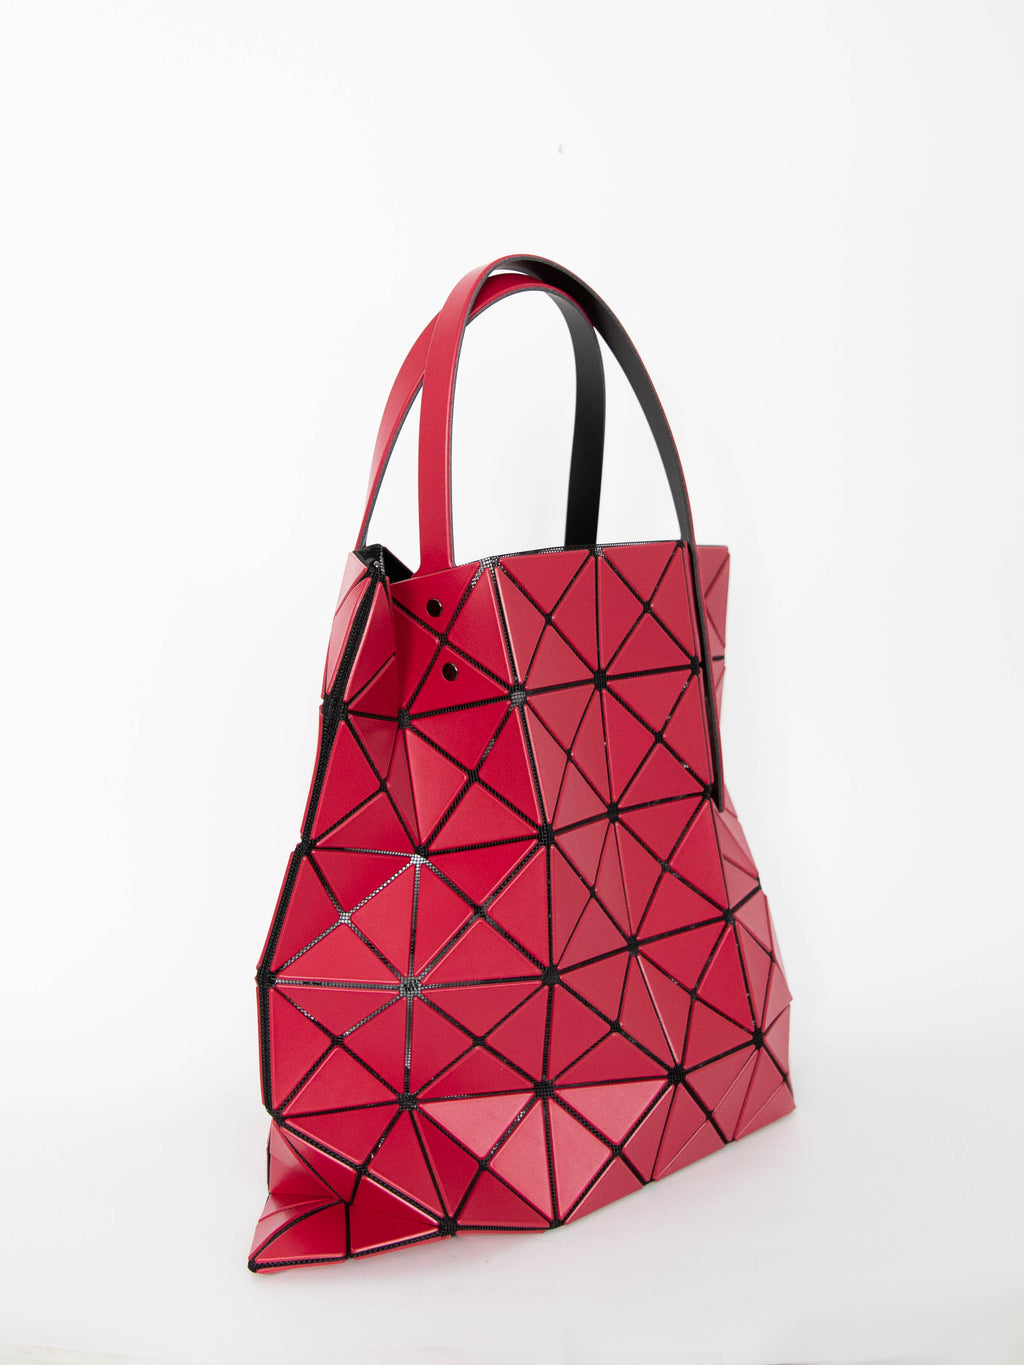 Lucent Matte II Tote Bag - Red